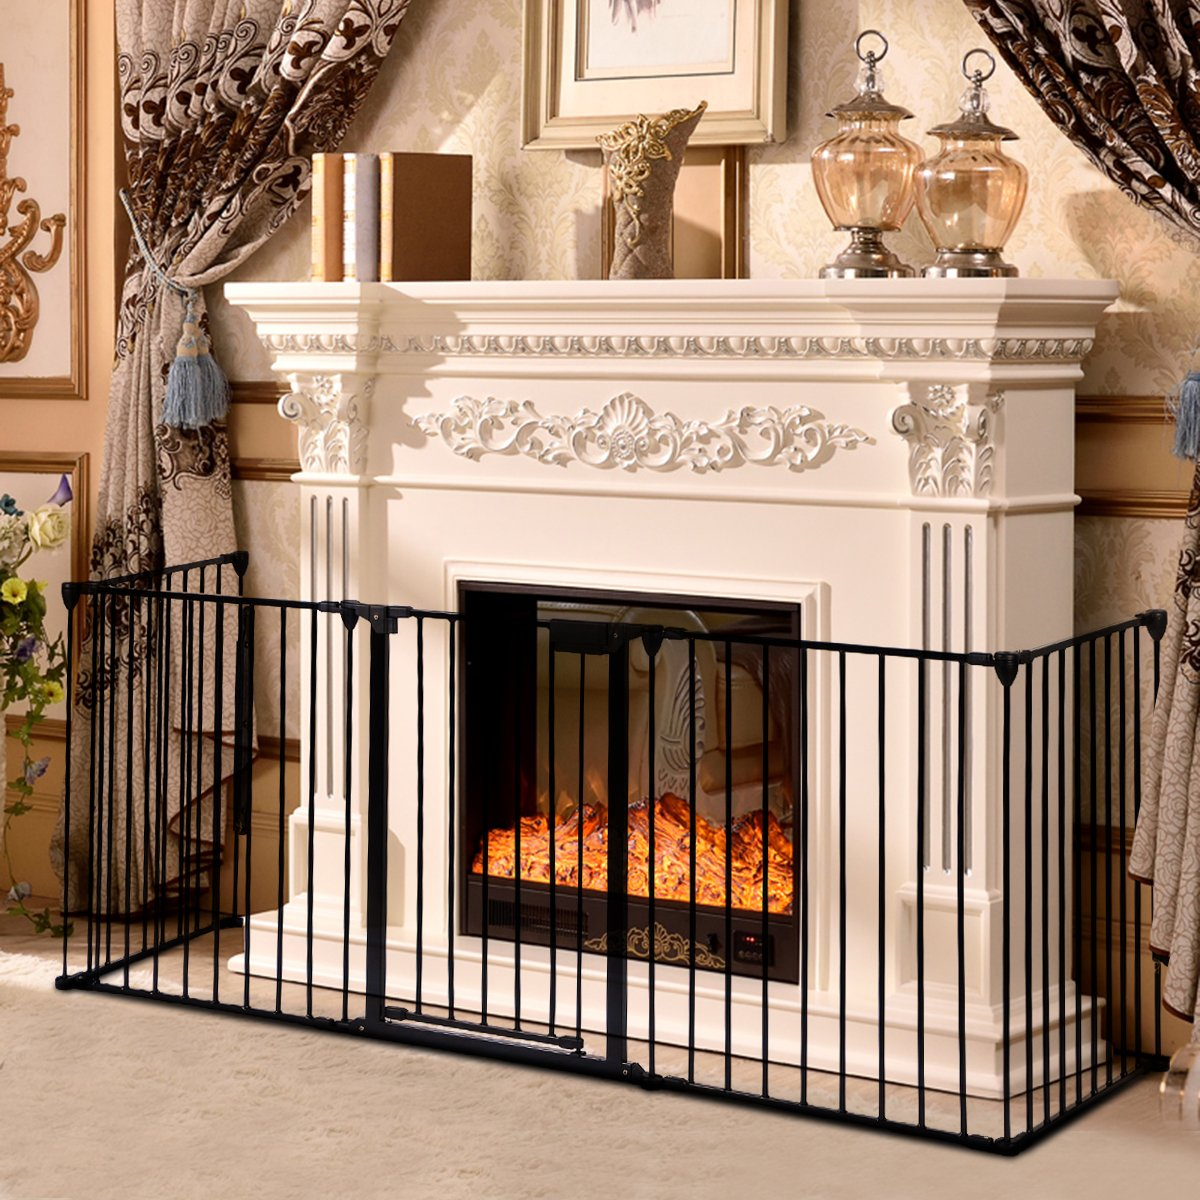 costway baby safety playpen hearth gate metal fire gate room